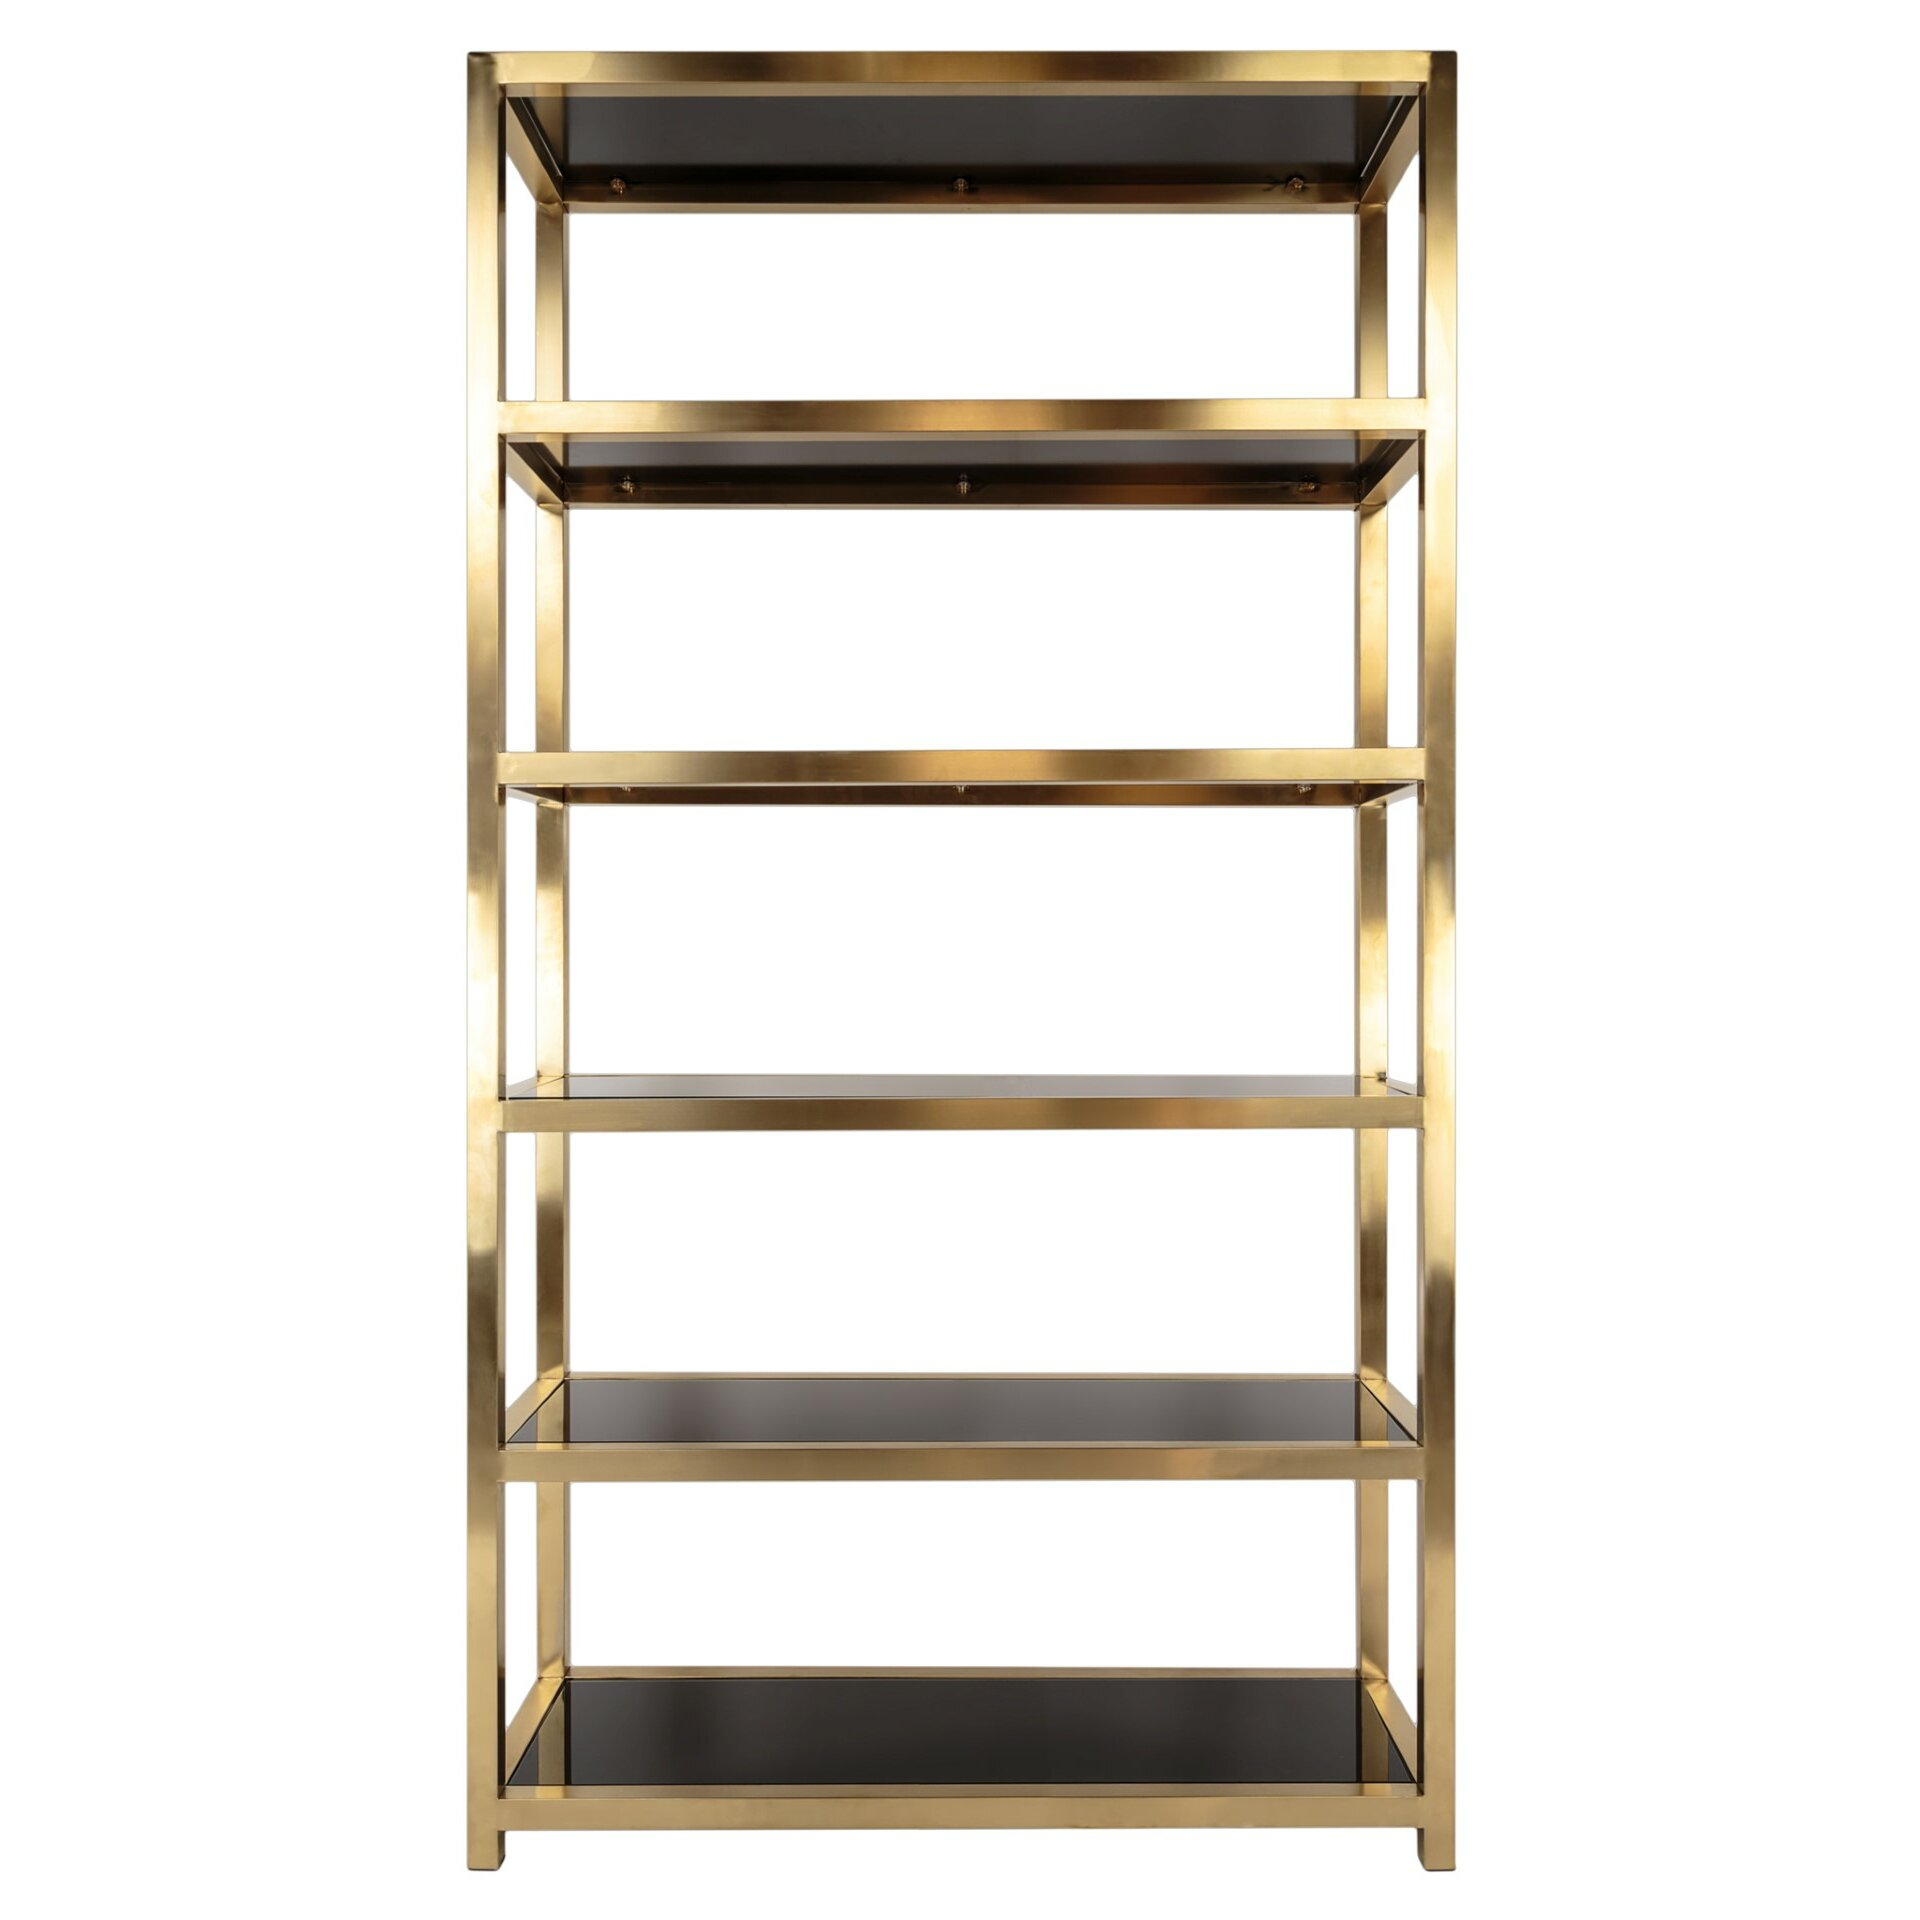 mercer41 86 etagere bookcase wayfair. Black Bedroom Furniture Sets. Home Design Ideas